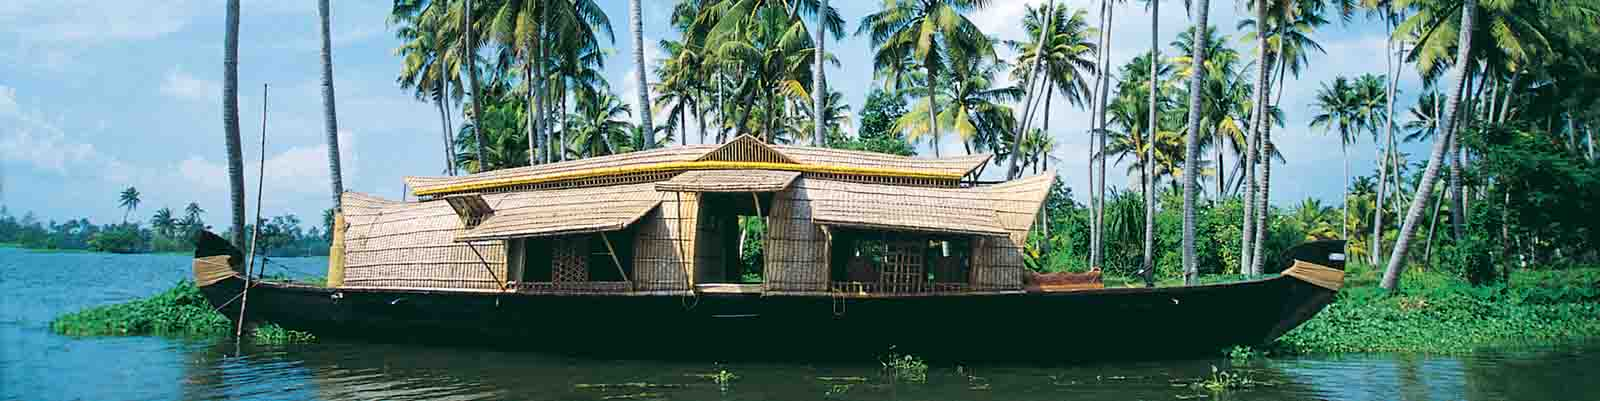 kerala tour and honeymoon packages from Mumbai